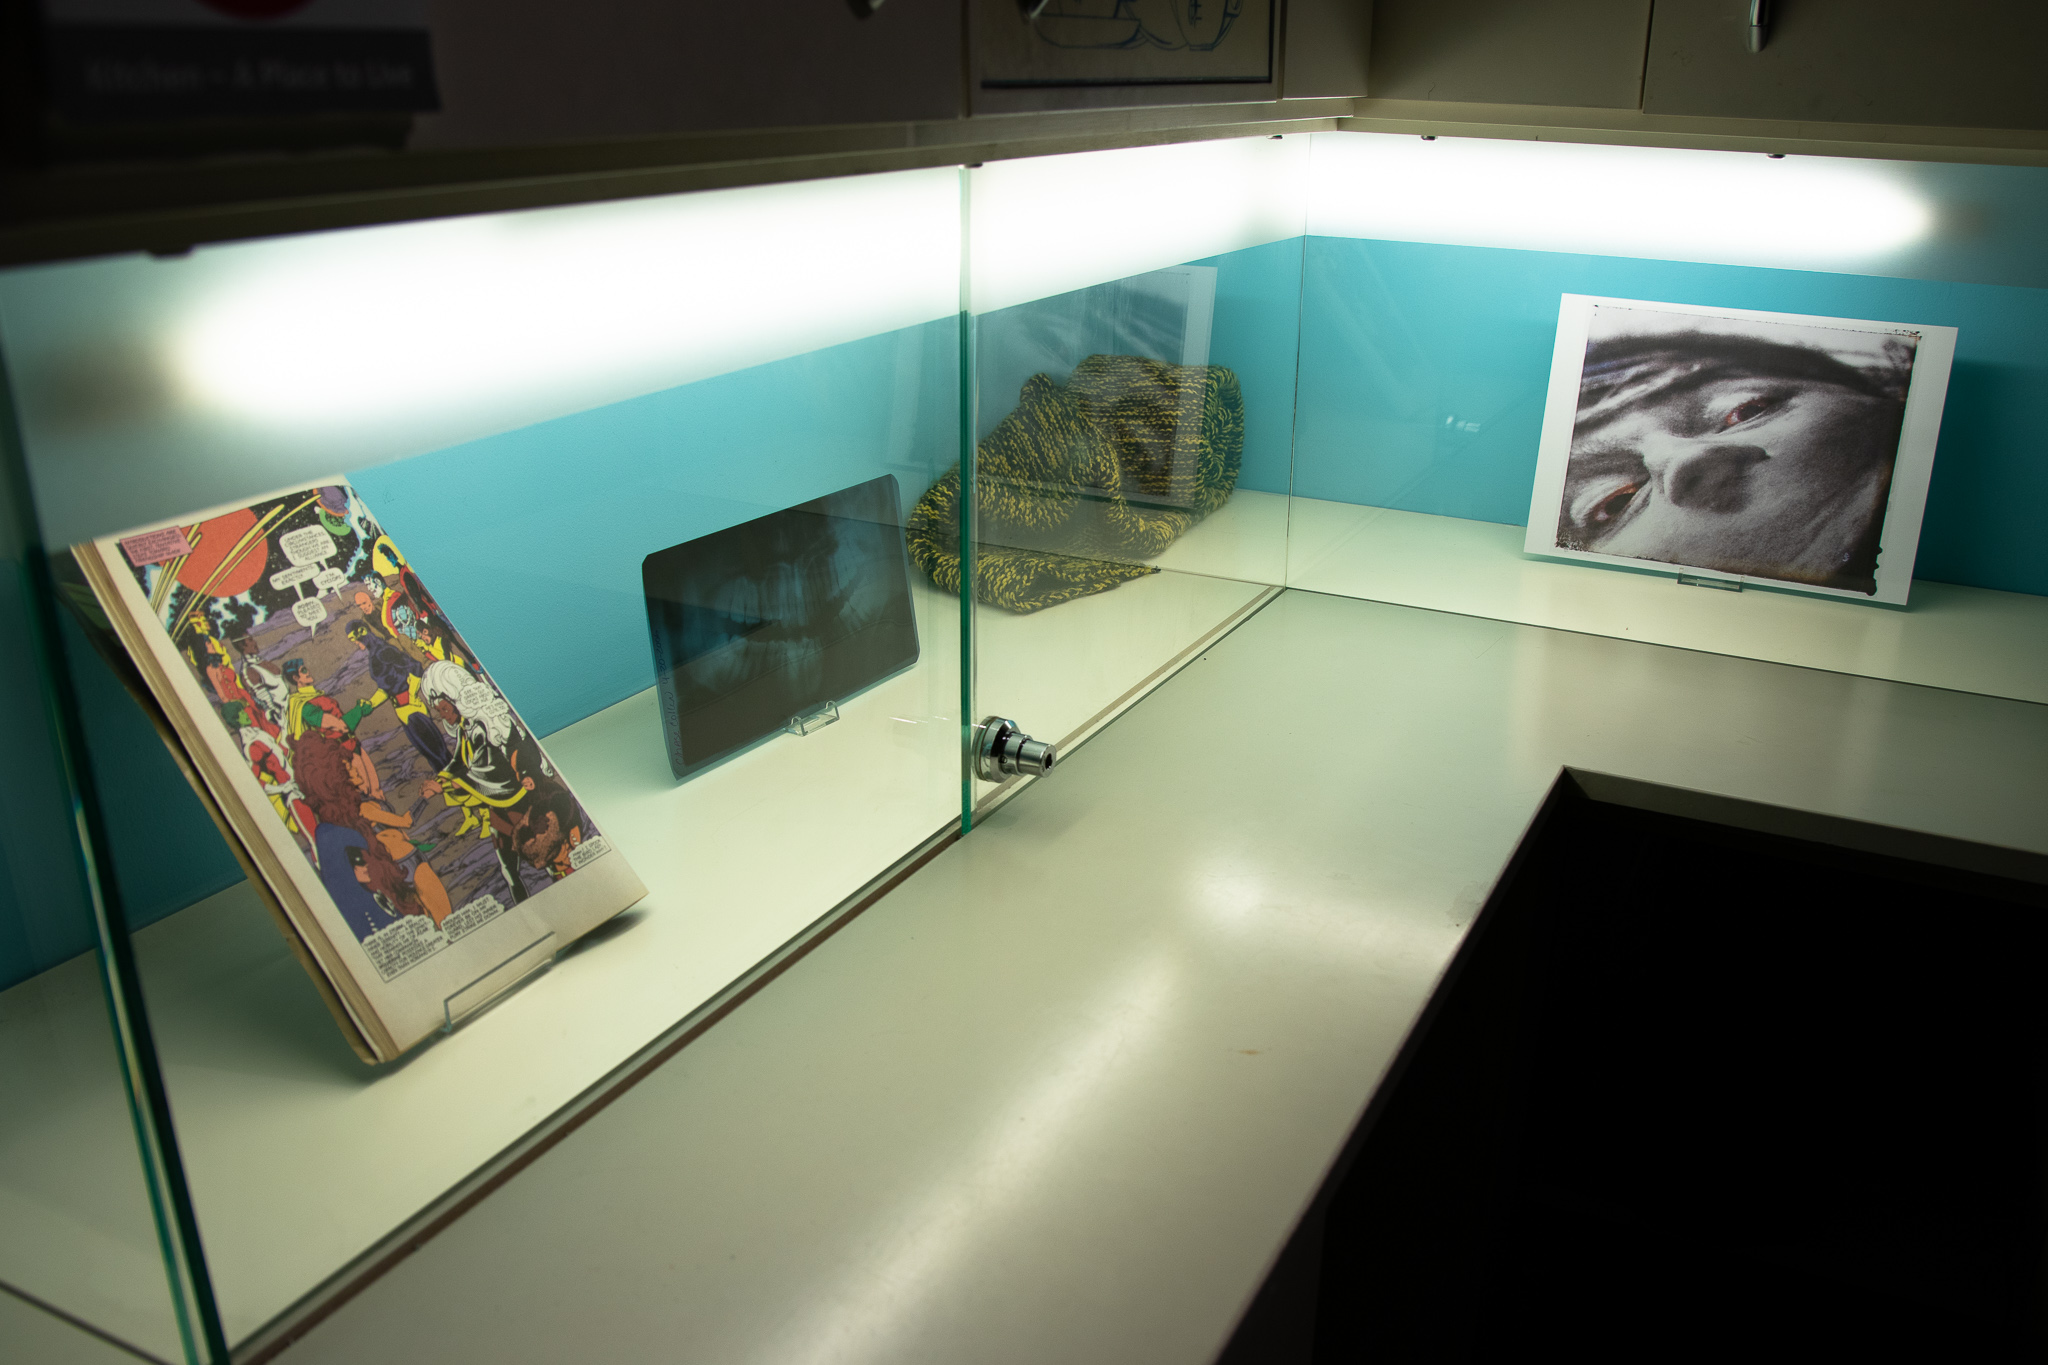 display of objects behind glass